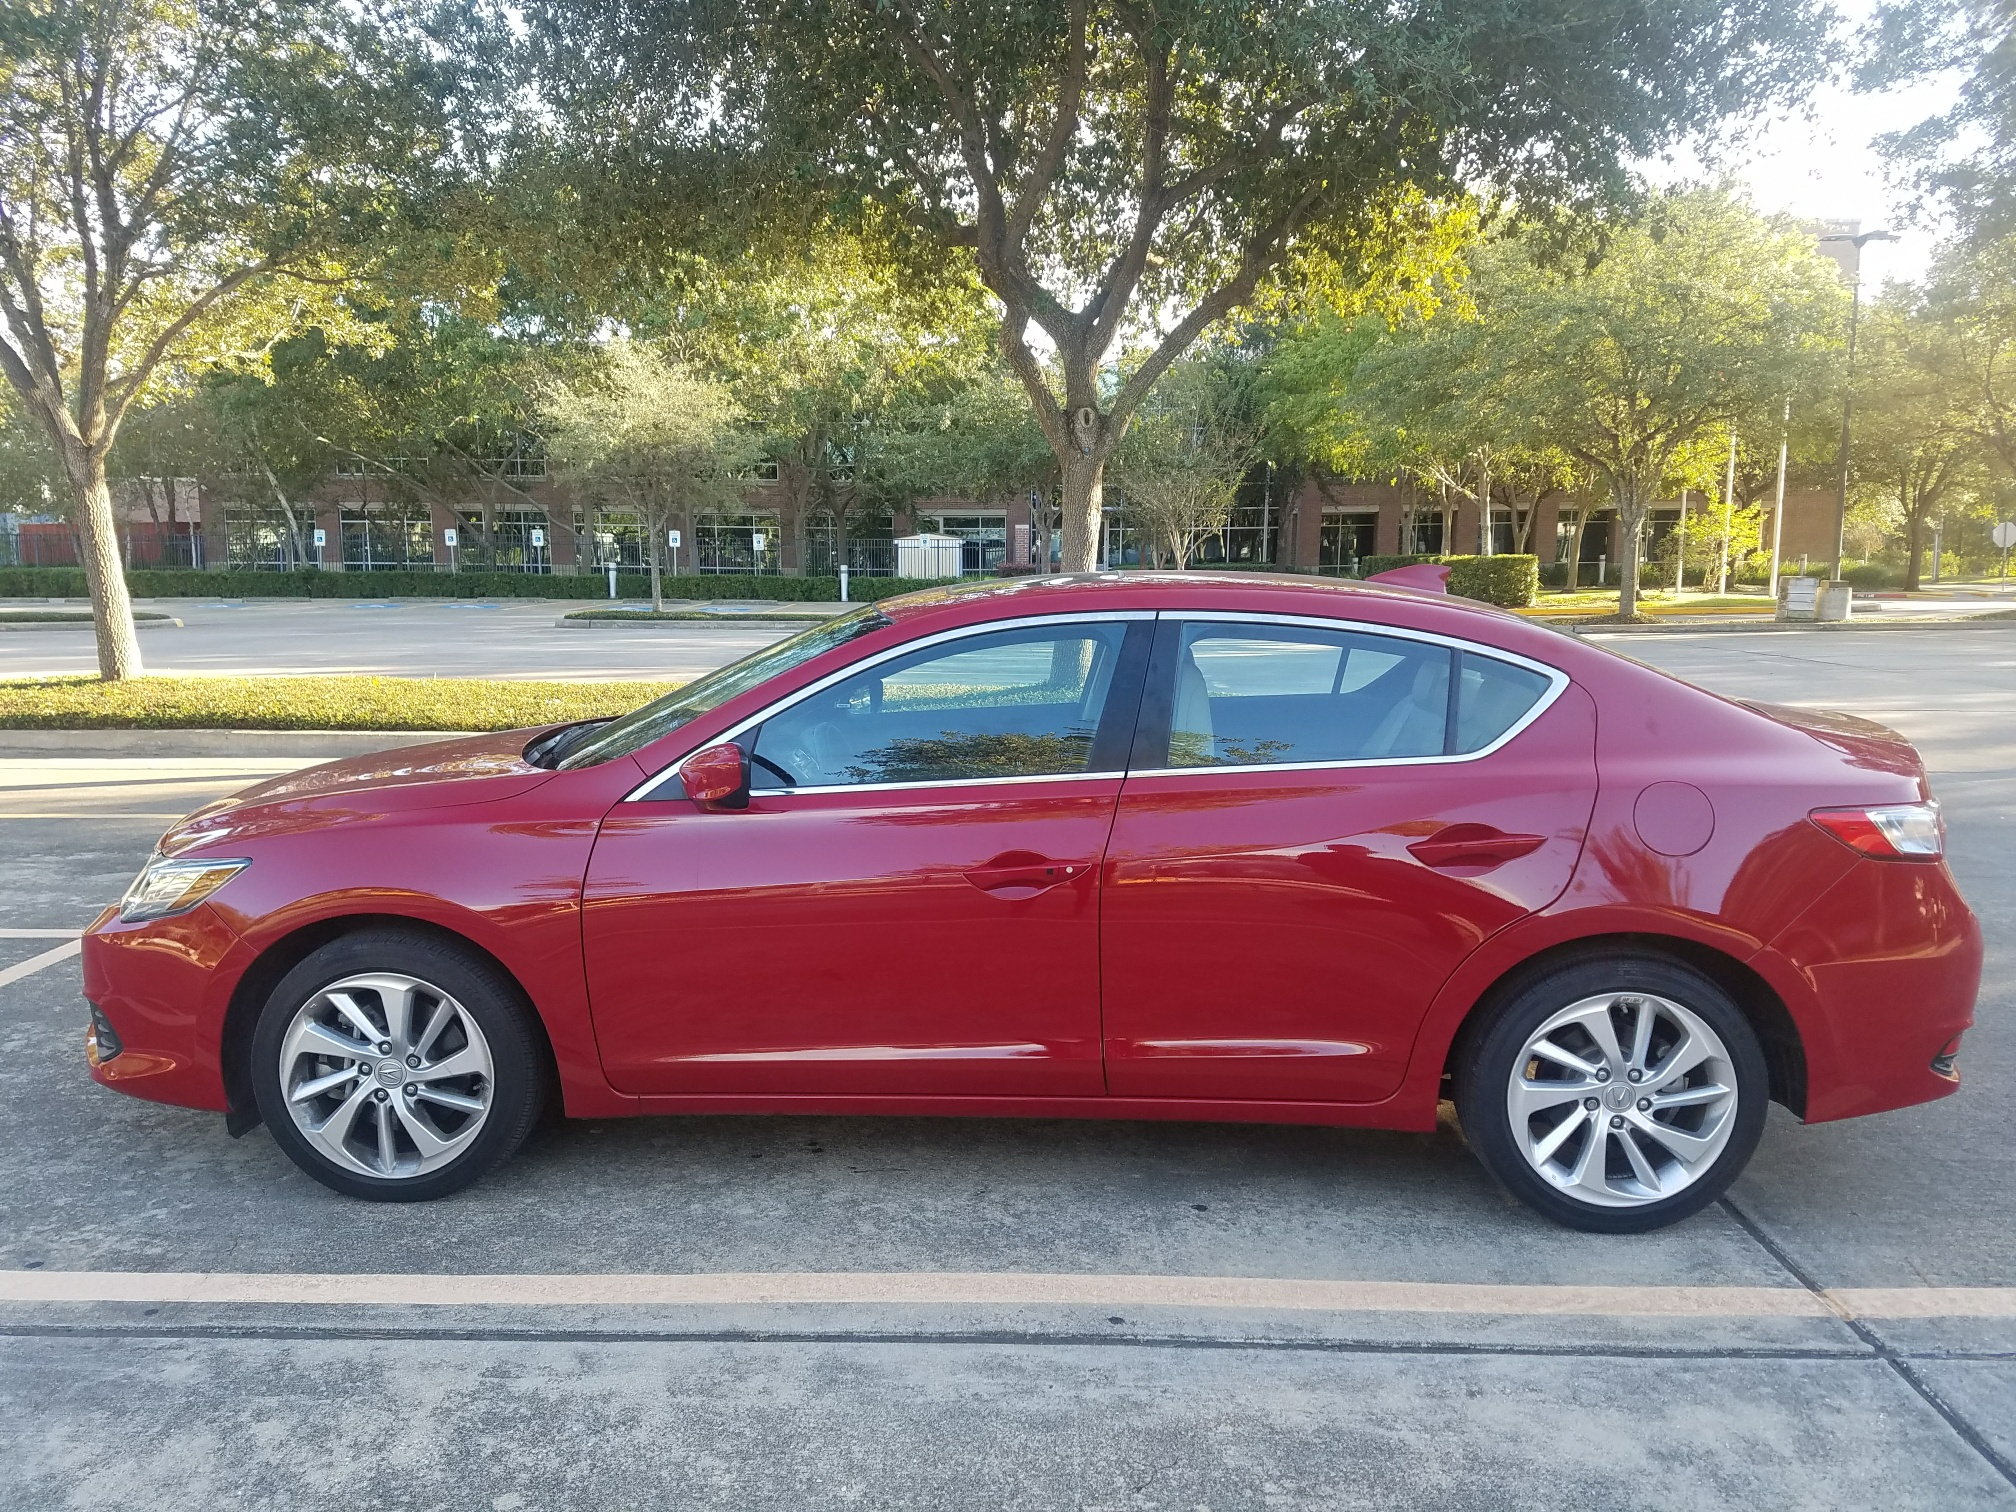 Acura_ILX_2017_RED (4)